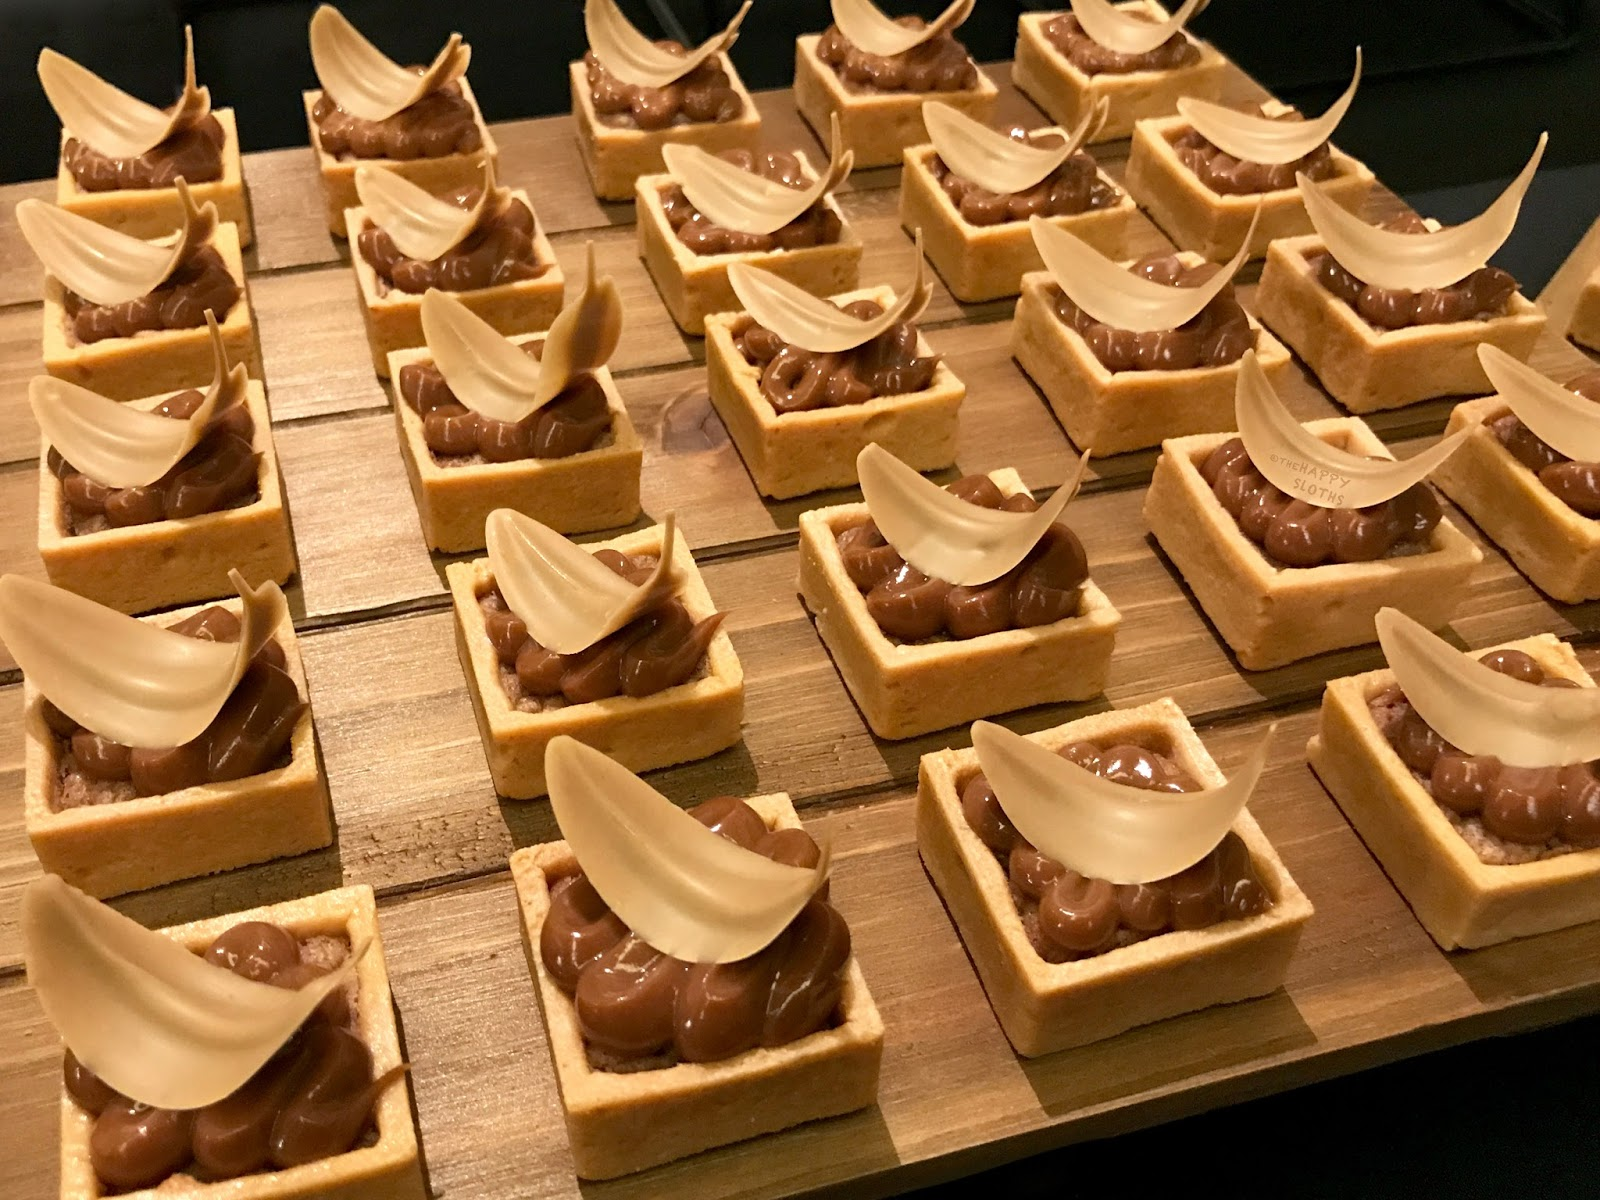 EAT! Pastry | Chocolate Tarts from Valrhona Chocolates